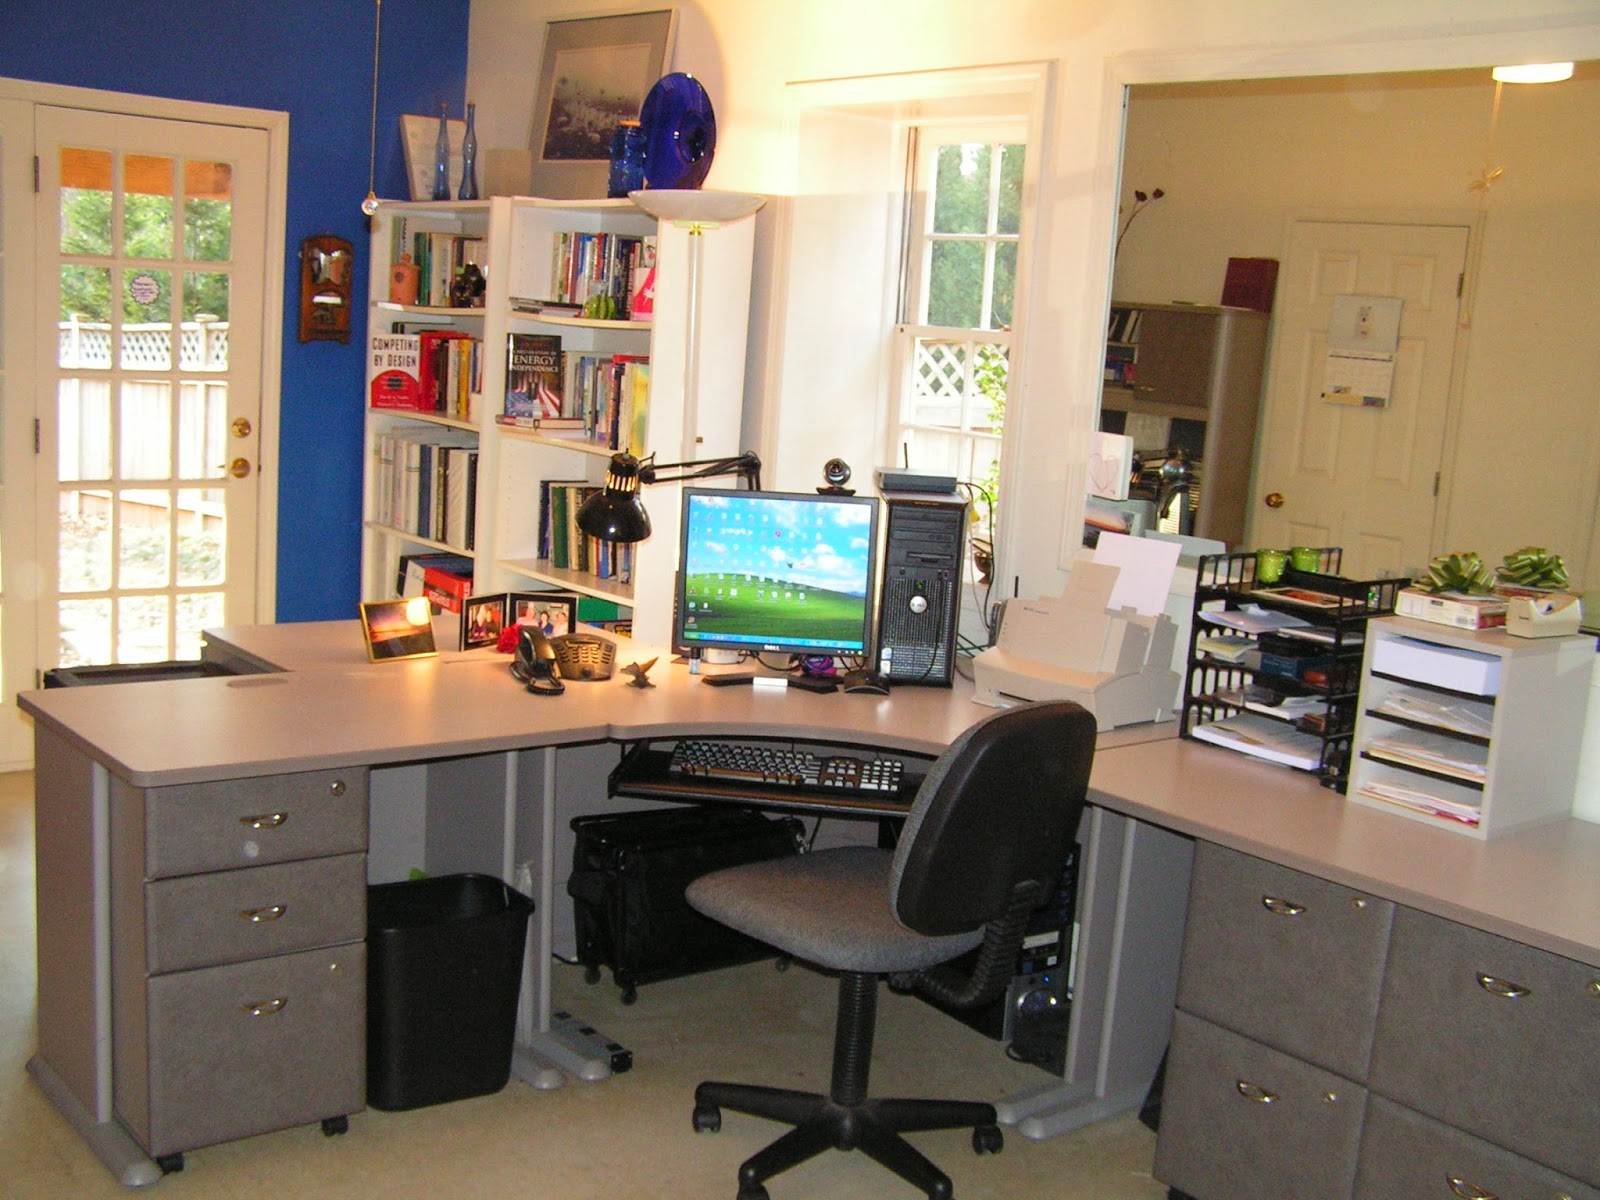 Amazing ... Conditions As All Of Us Have To Site To Manage Some Works At Home From  Time To Time. Here You Some Basic Notes About How To Set Up Your Home Office .